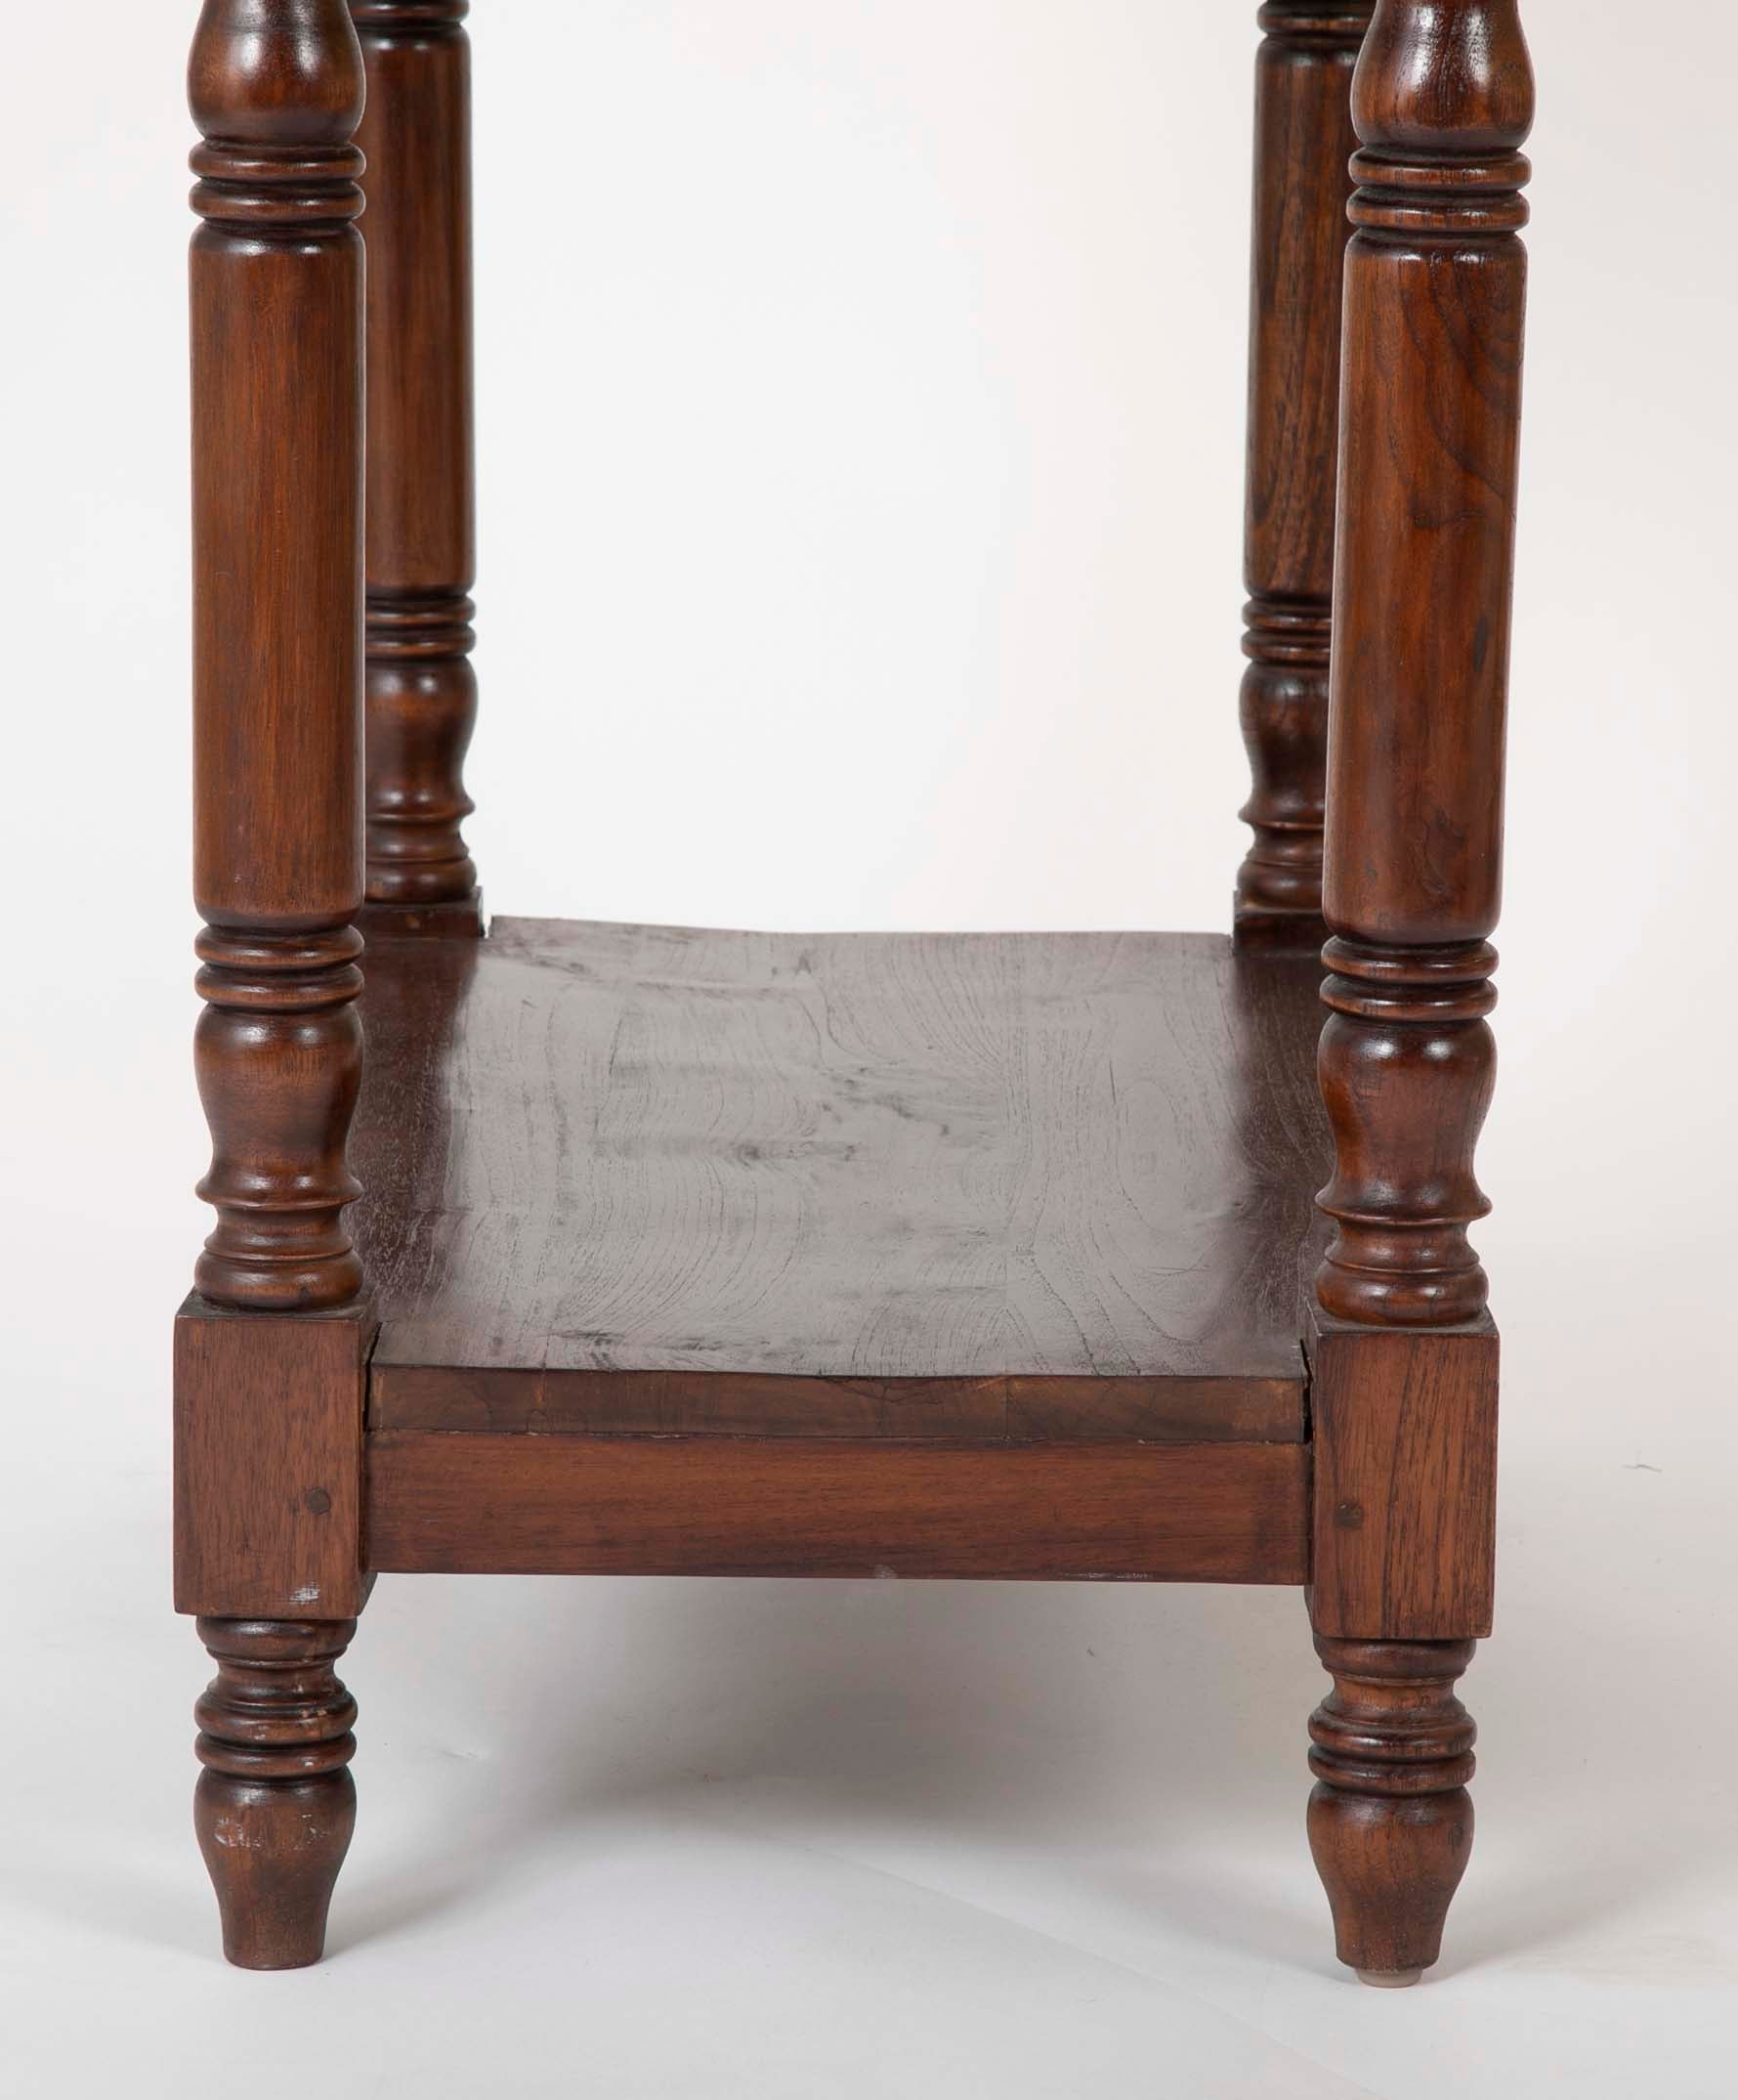 19th Century West Indian Ship Model Table